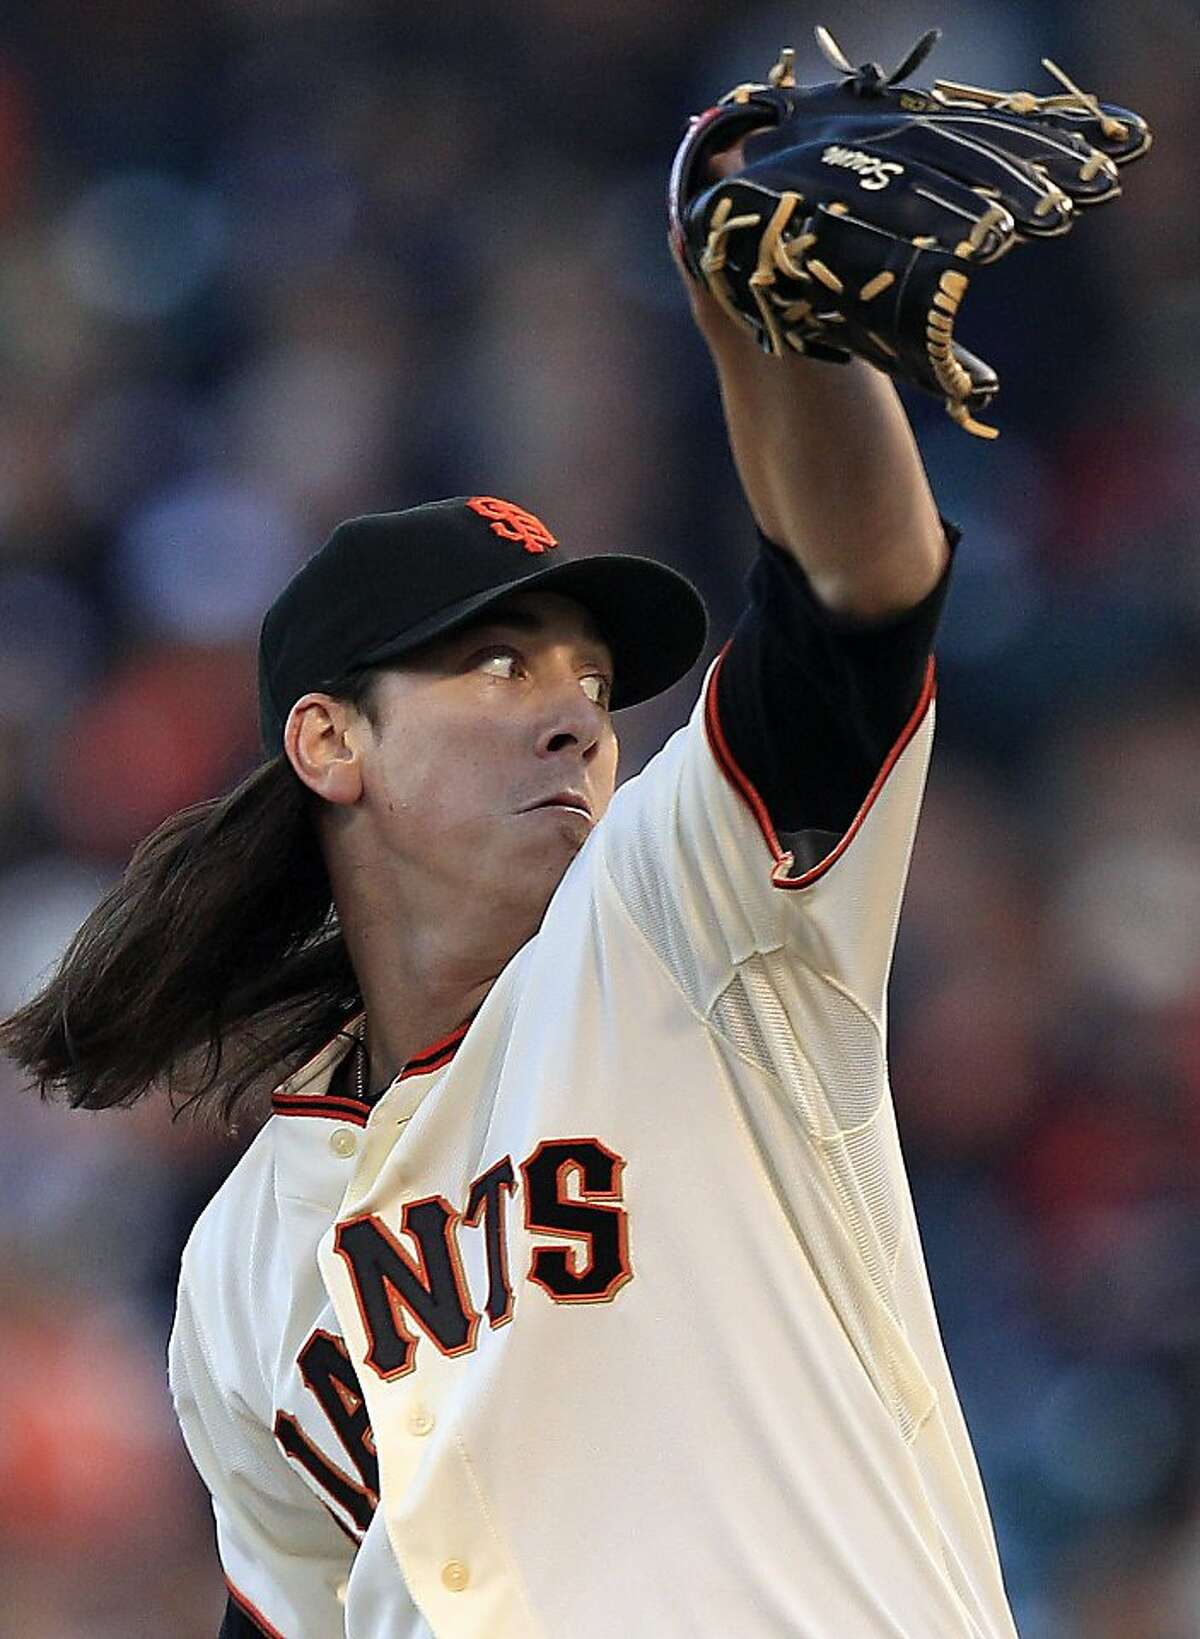 San Francisco Giants starting pitcher Tim Lincecum throws to the Chicago Cubs during the first inning of a baseball game in San Francisco, Monday, Aug. 29, 2011. (AP Photo/Marcio Jose Sanchez)